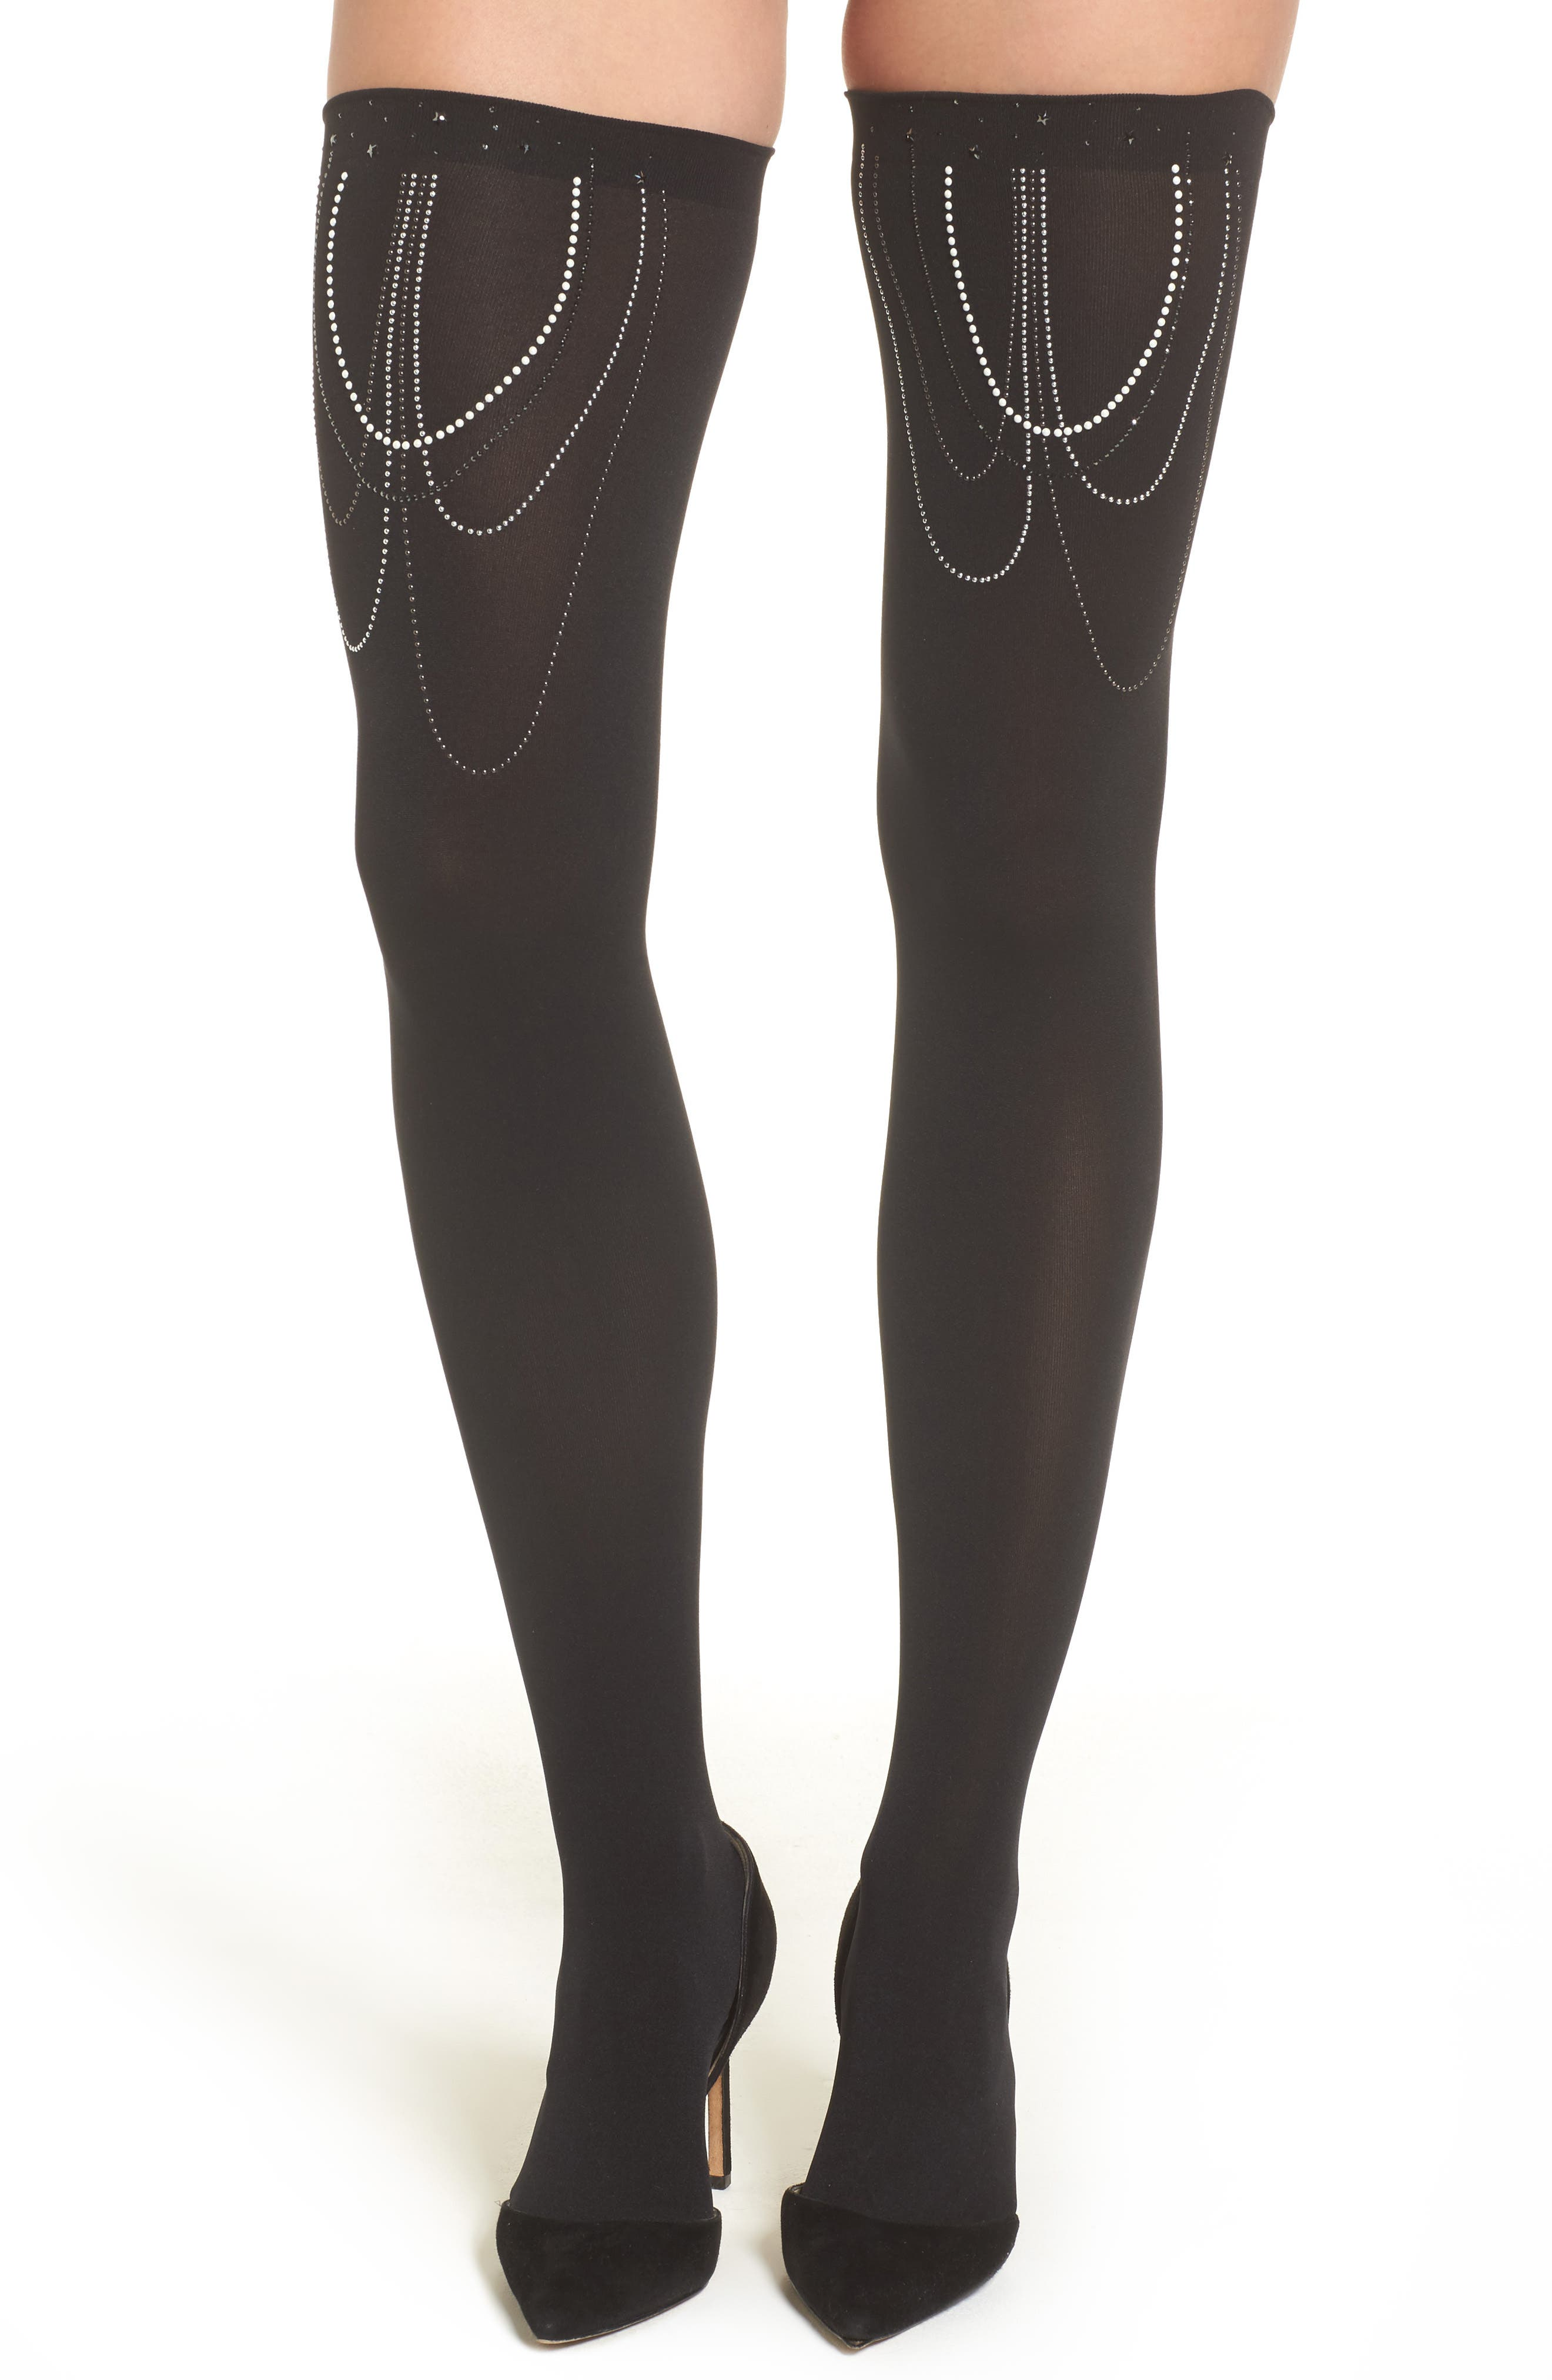 Embellished Stay-Put Stockings,                             Alternate thumbnail 2, color,                             001